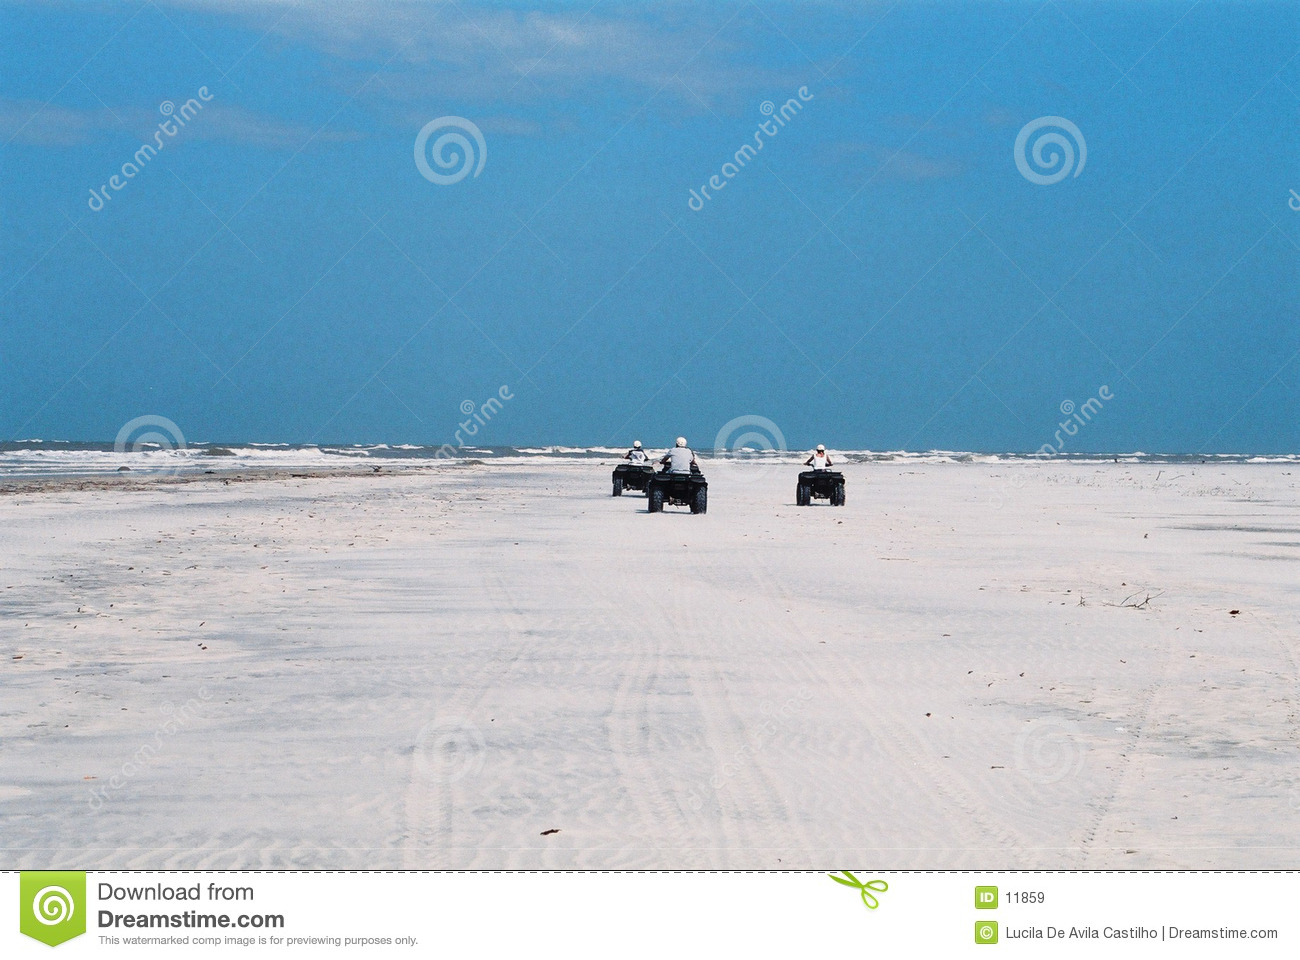 Adventure at the deserted beach